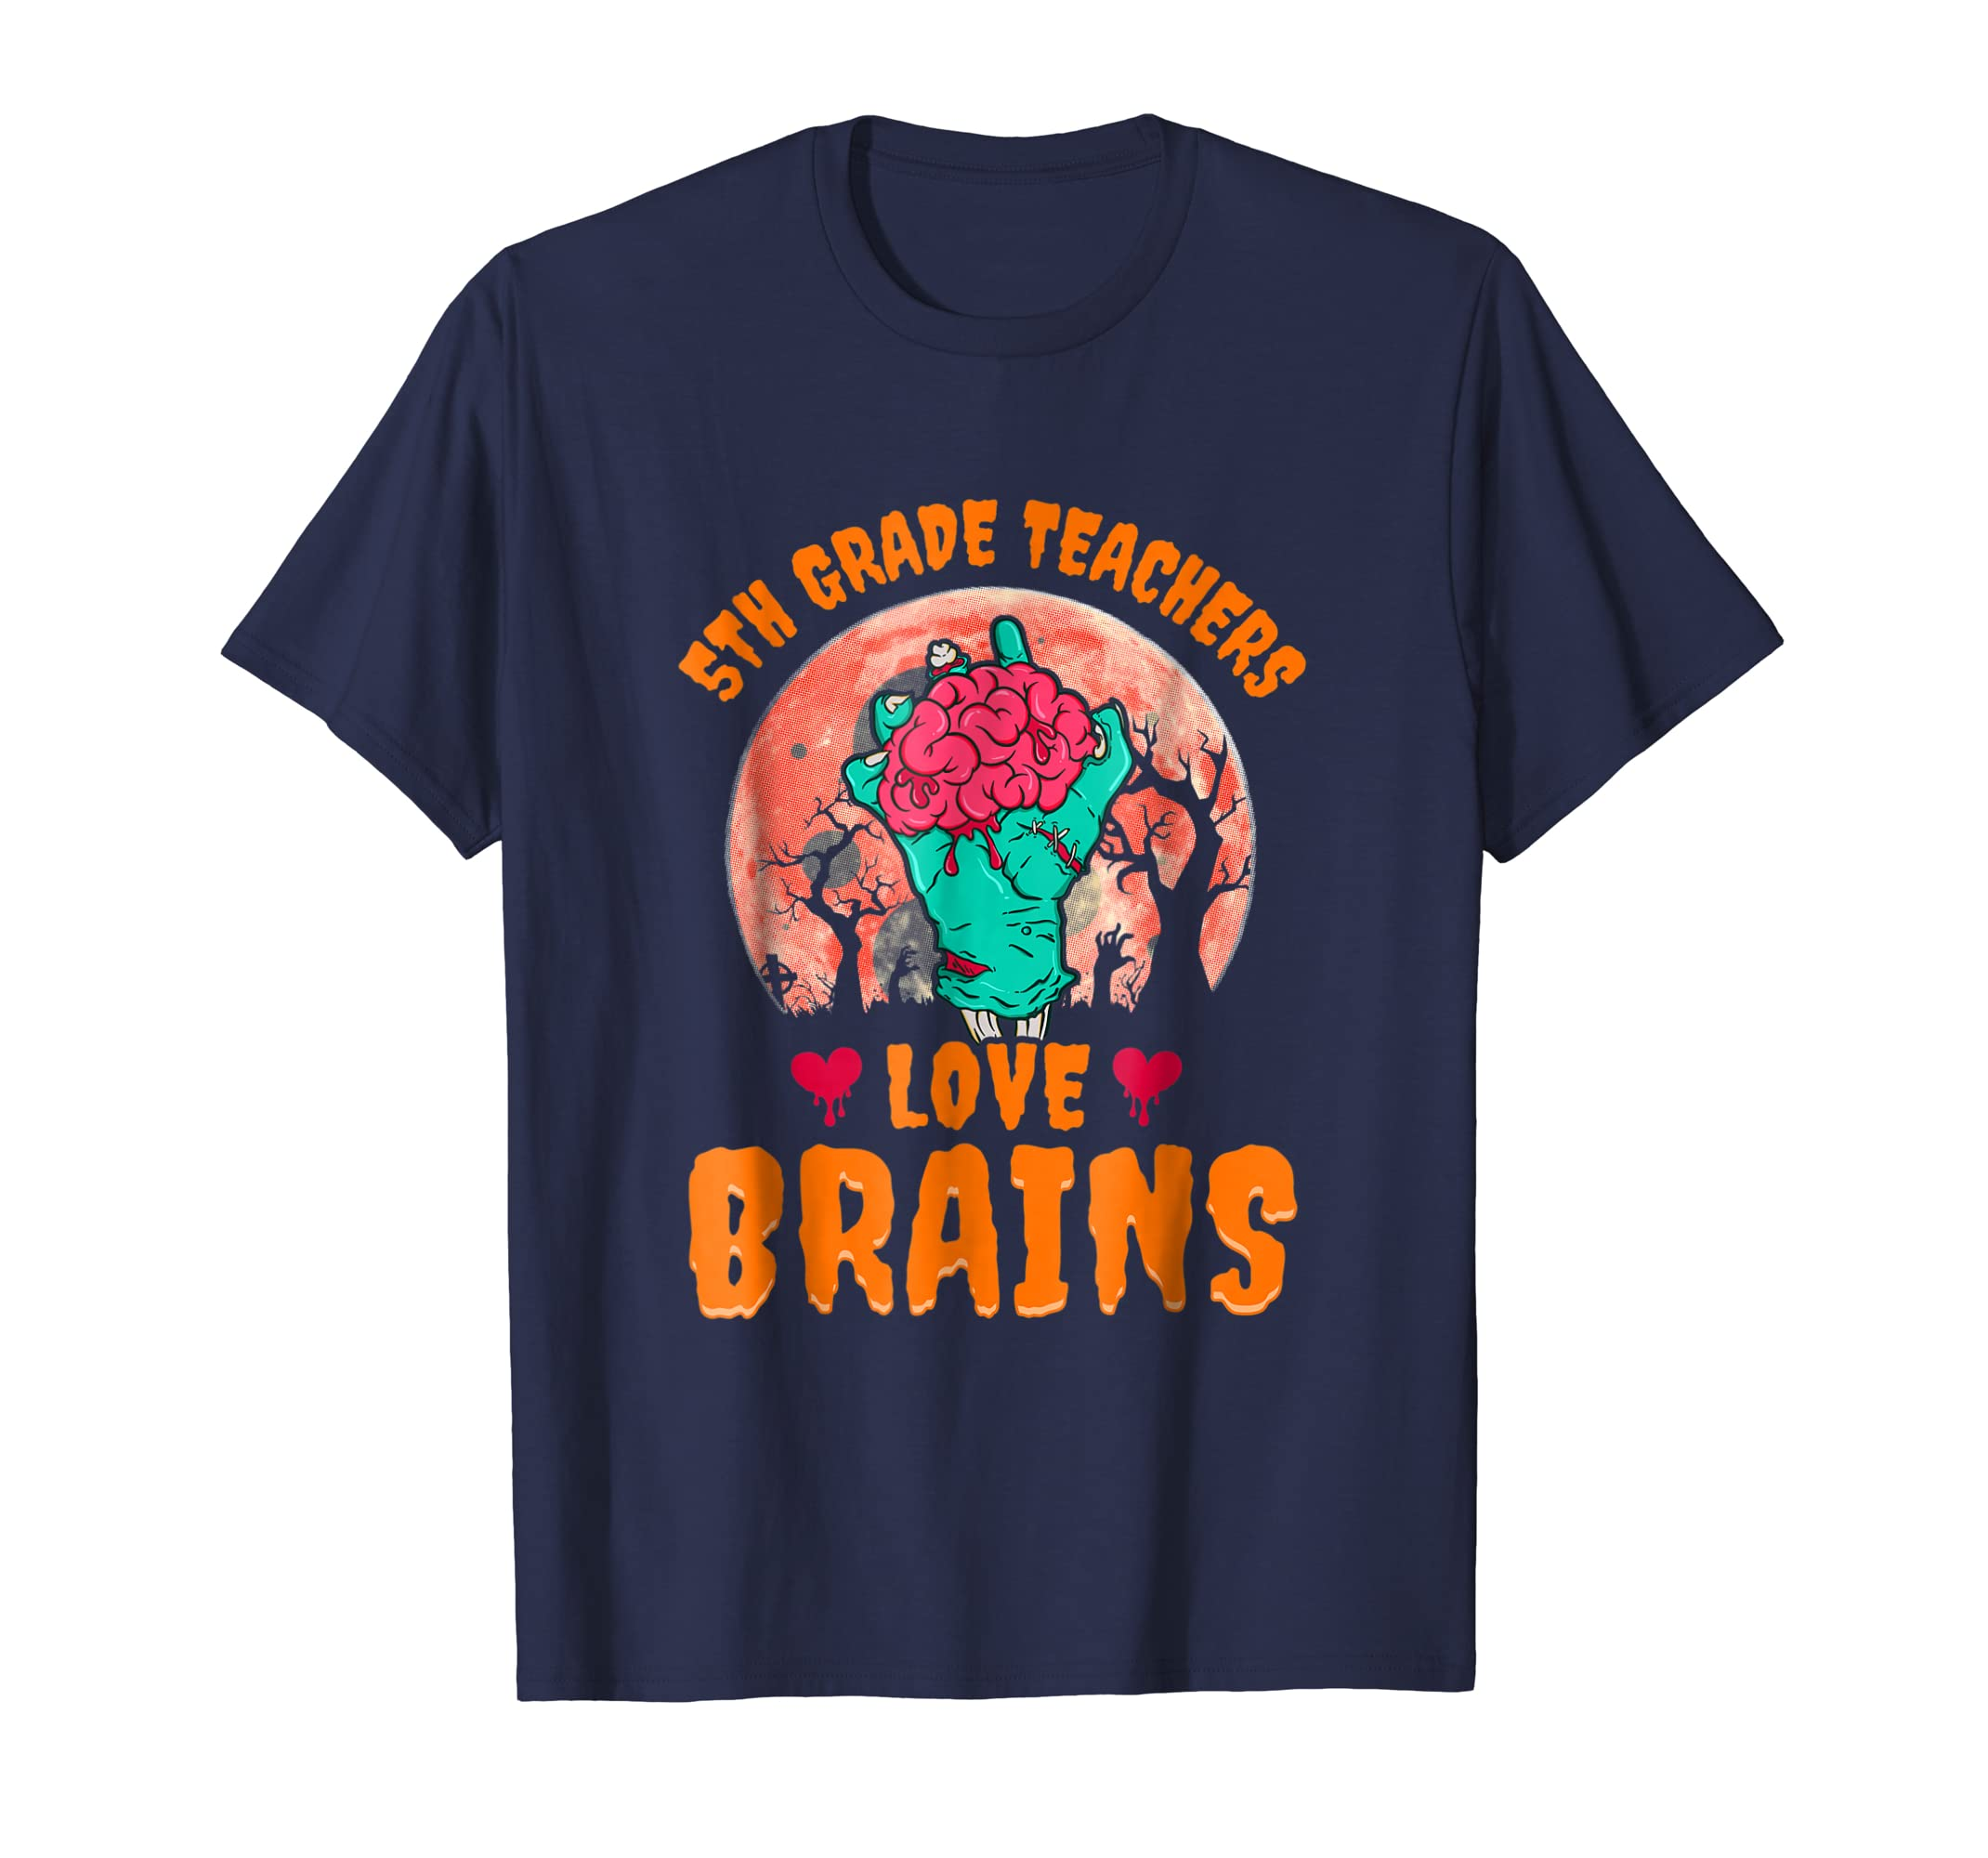 5th Grade Teachers Love Brains Shirt Kids Halloween Costume-azvn